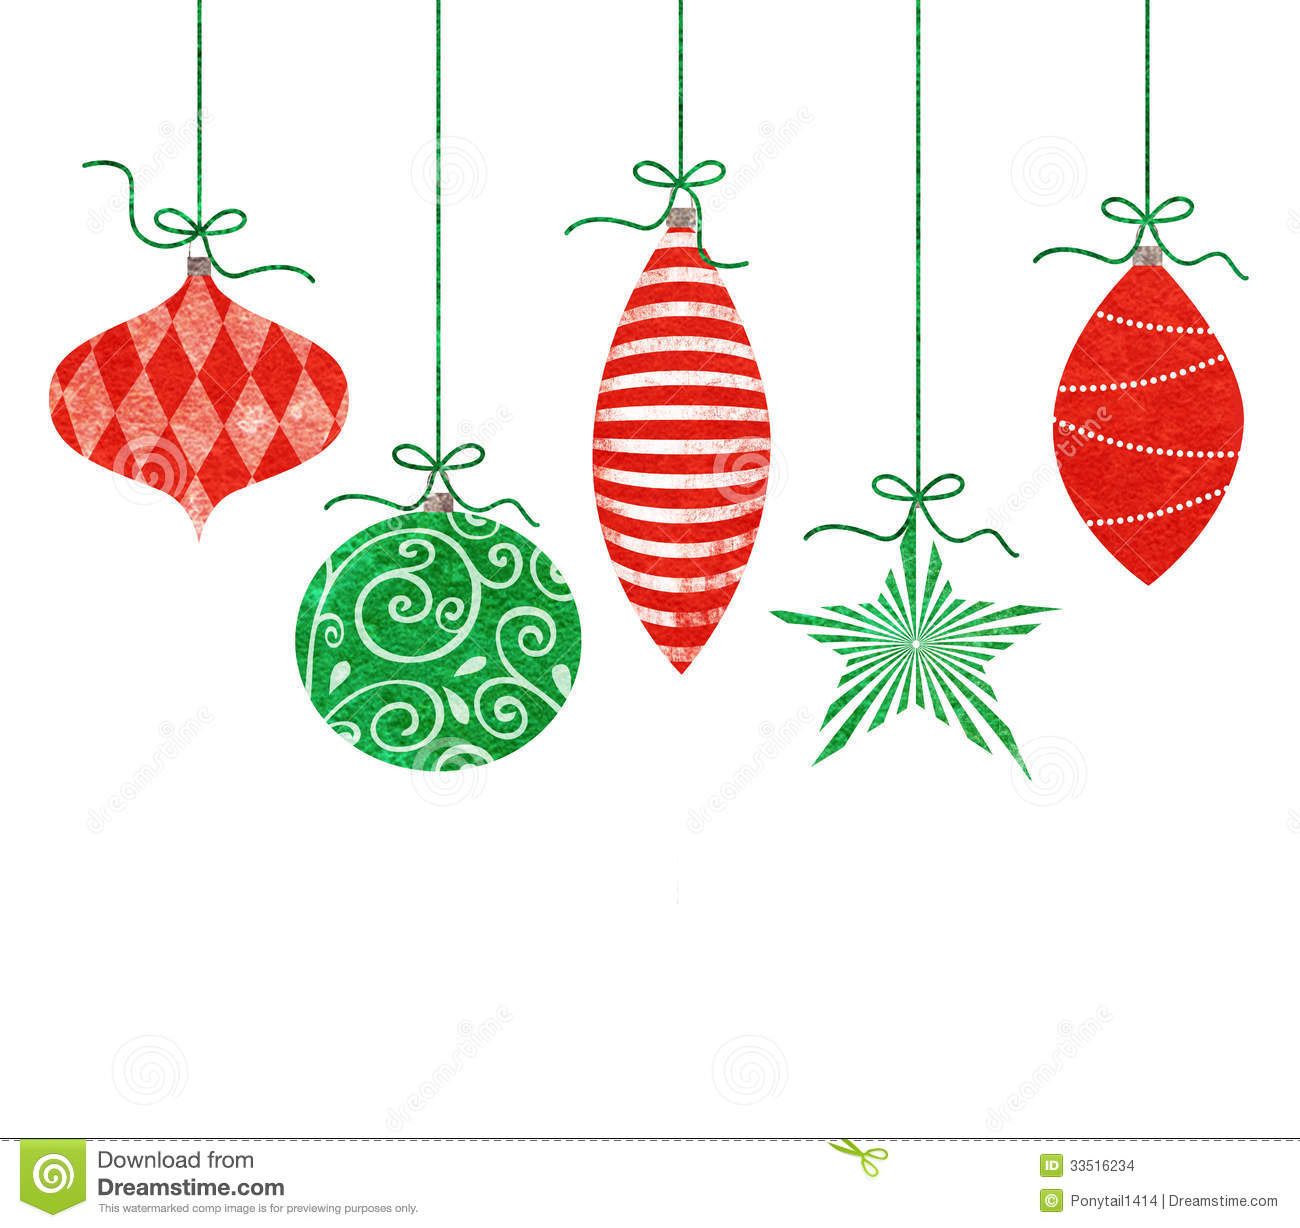 Whimsical Hanging Christmas Ornaments Stock Images - Image: 33516234